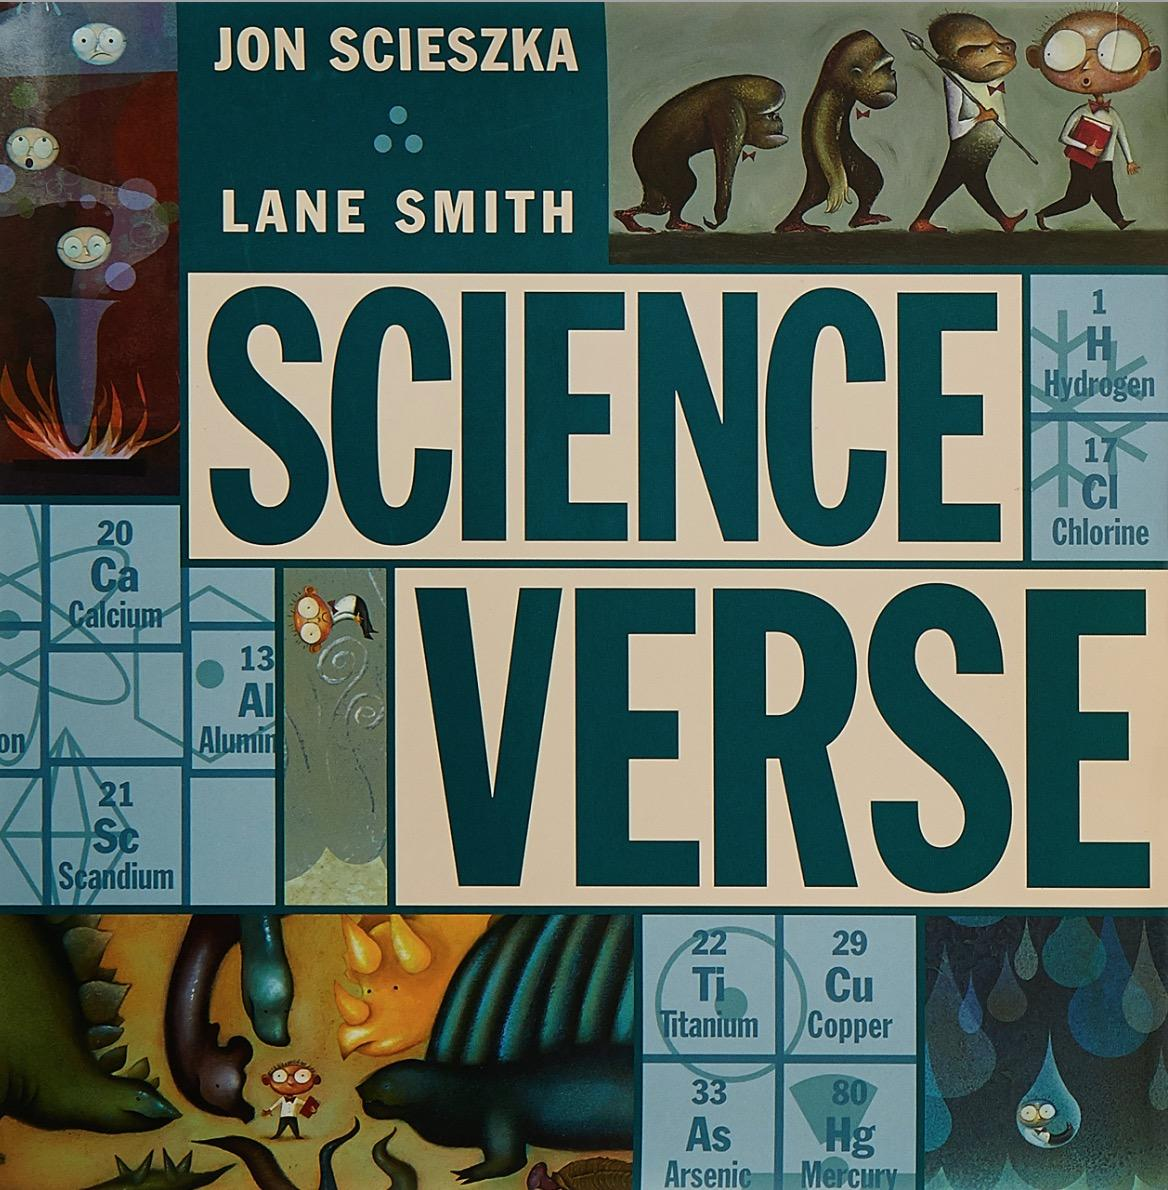 Book cover for Science Verse written by Jon Scieszka and illustrated by Lane Smith